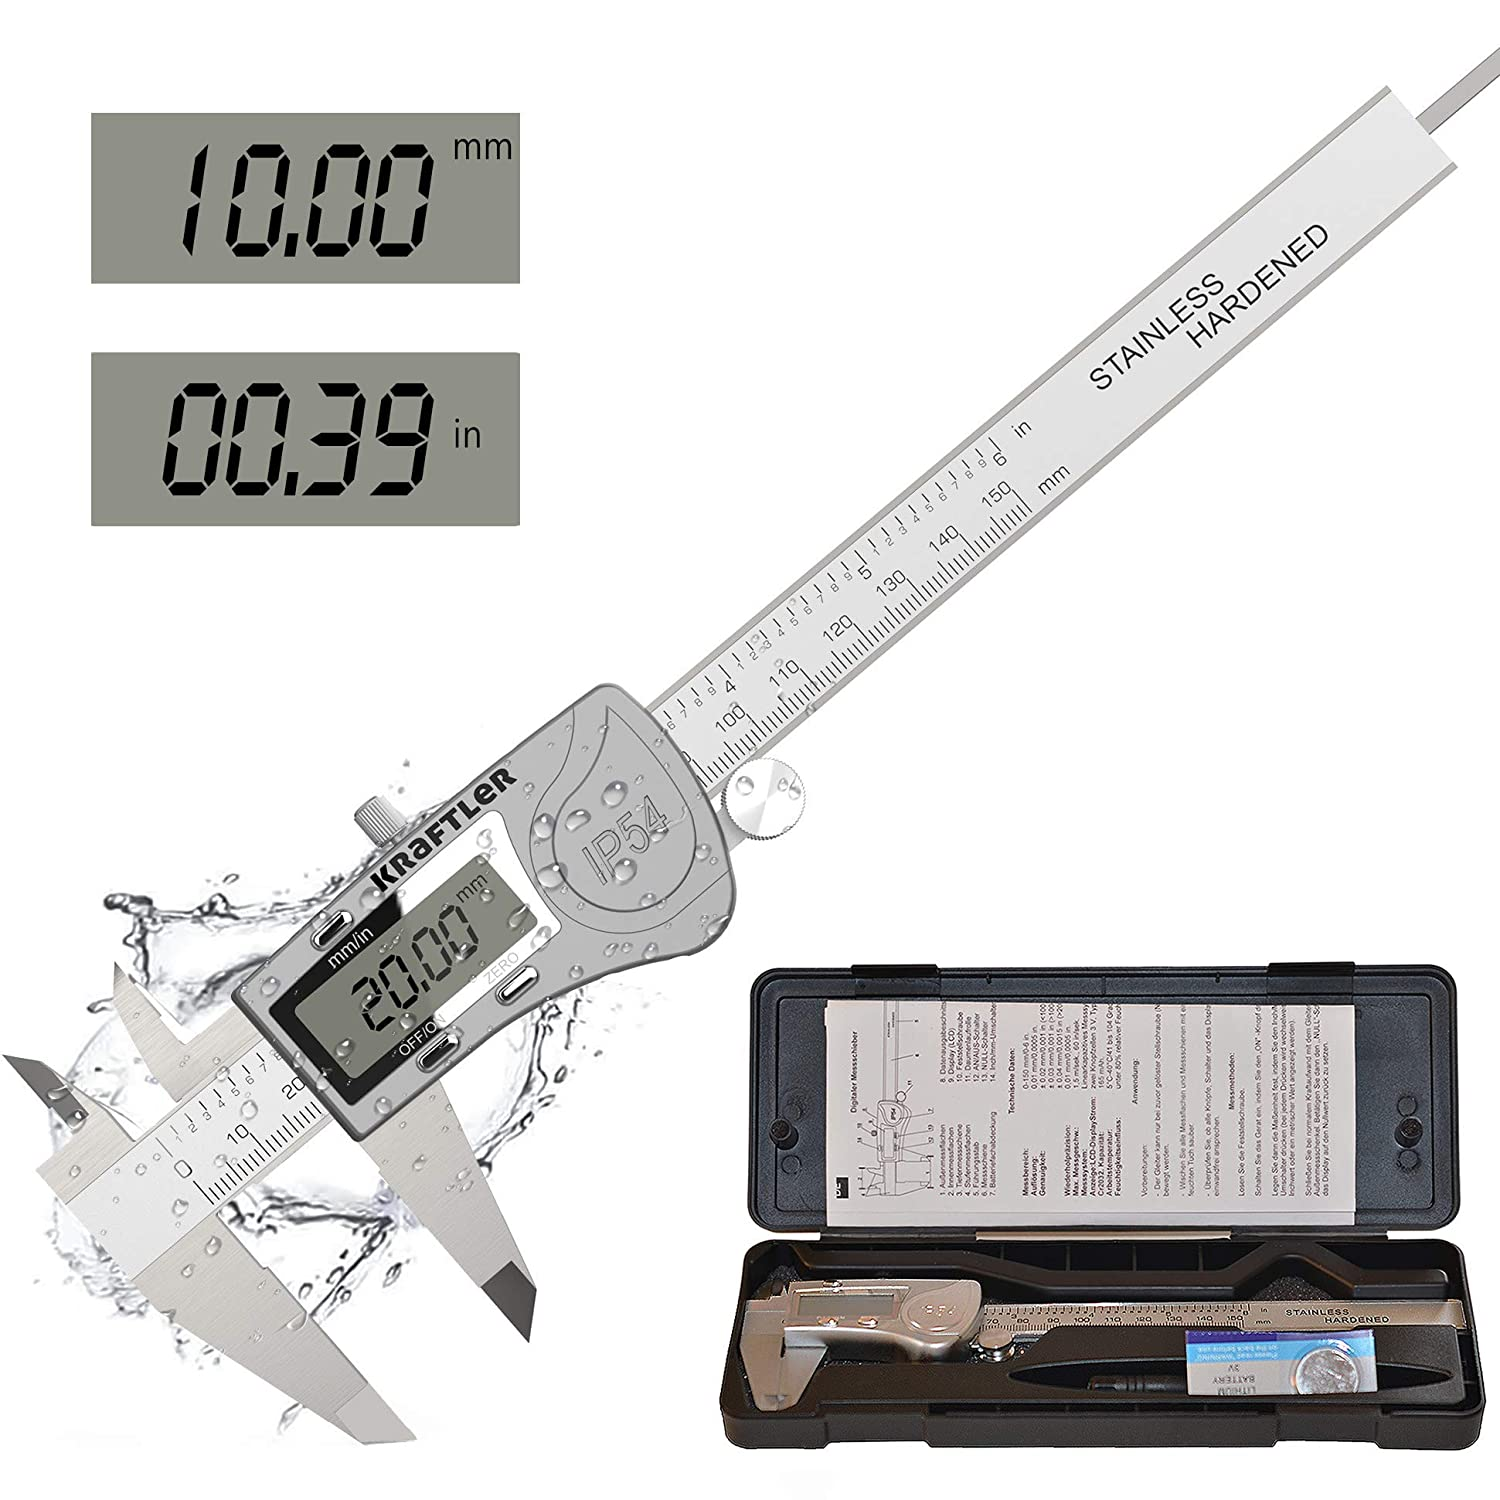 Digital Outside Micrometer Caliper Inch//Metric Conversion with LCD Display